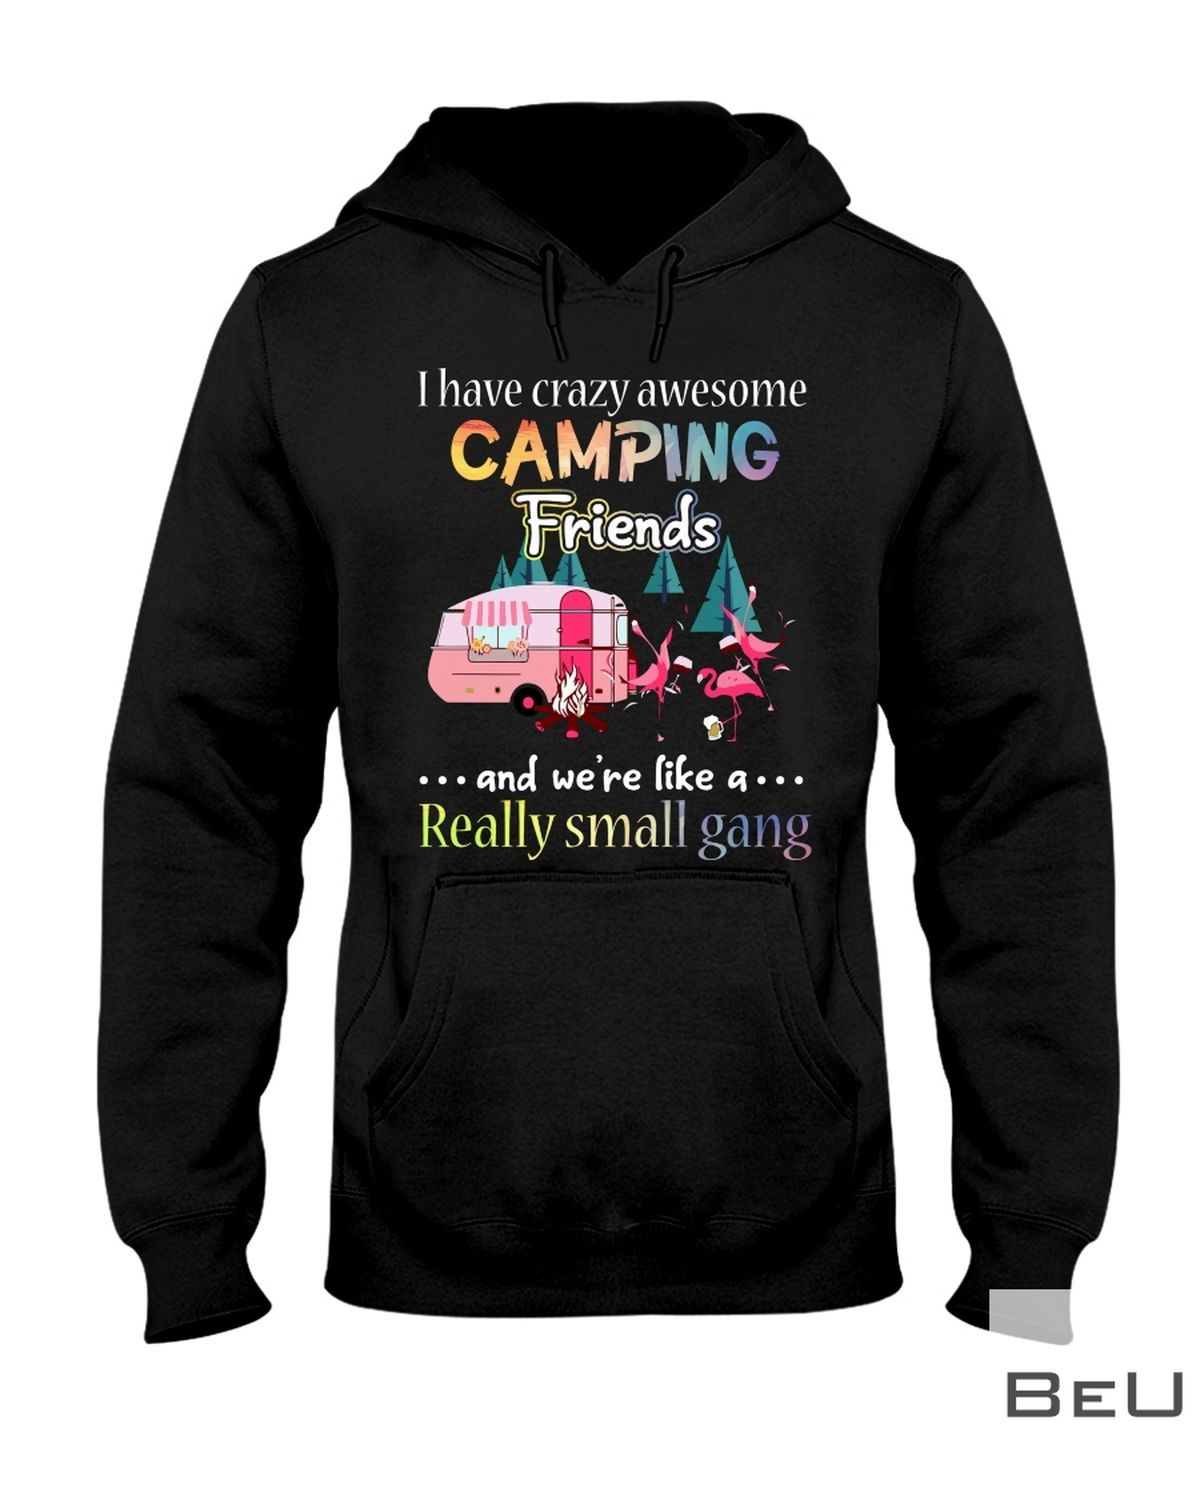 I Have Crazy Awesome Camping Friends And We're Like A Really Small Gang Shirtz